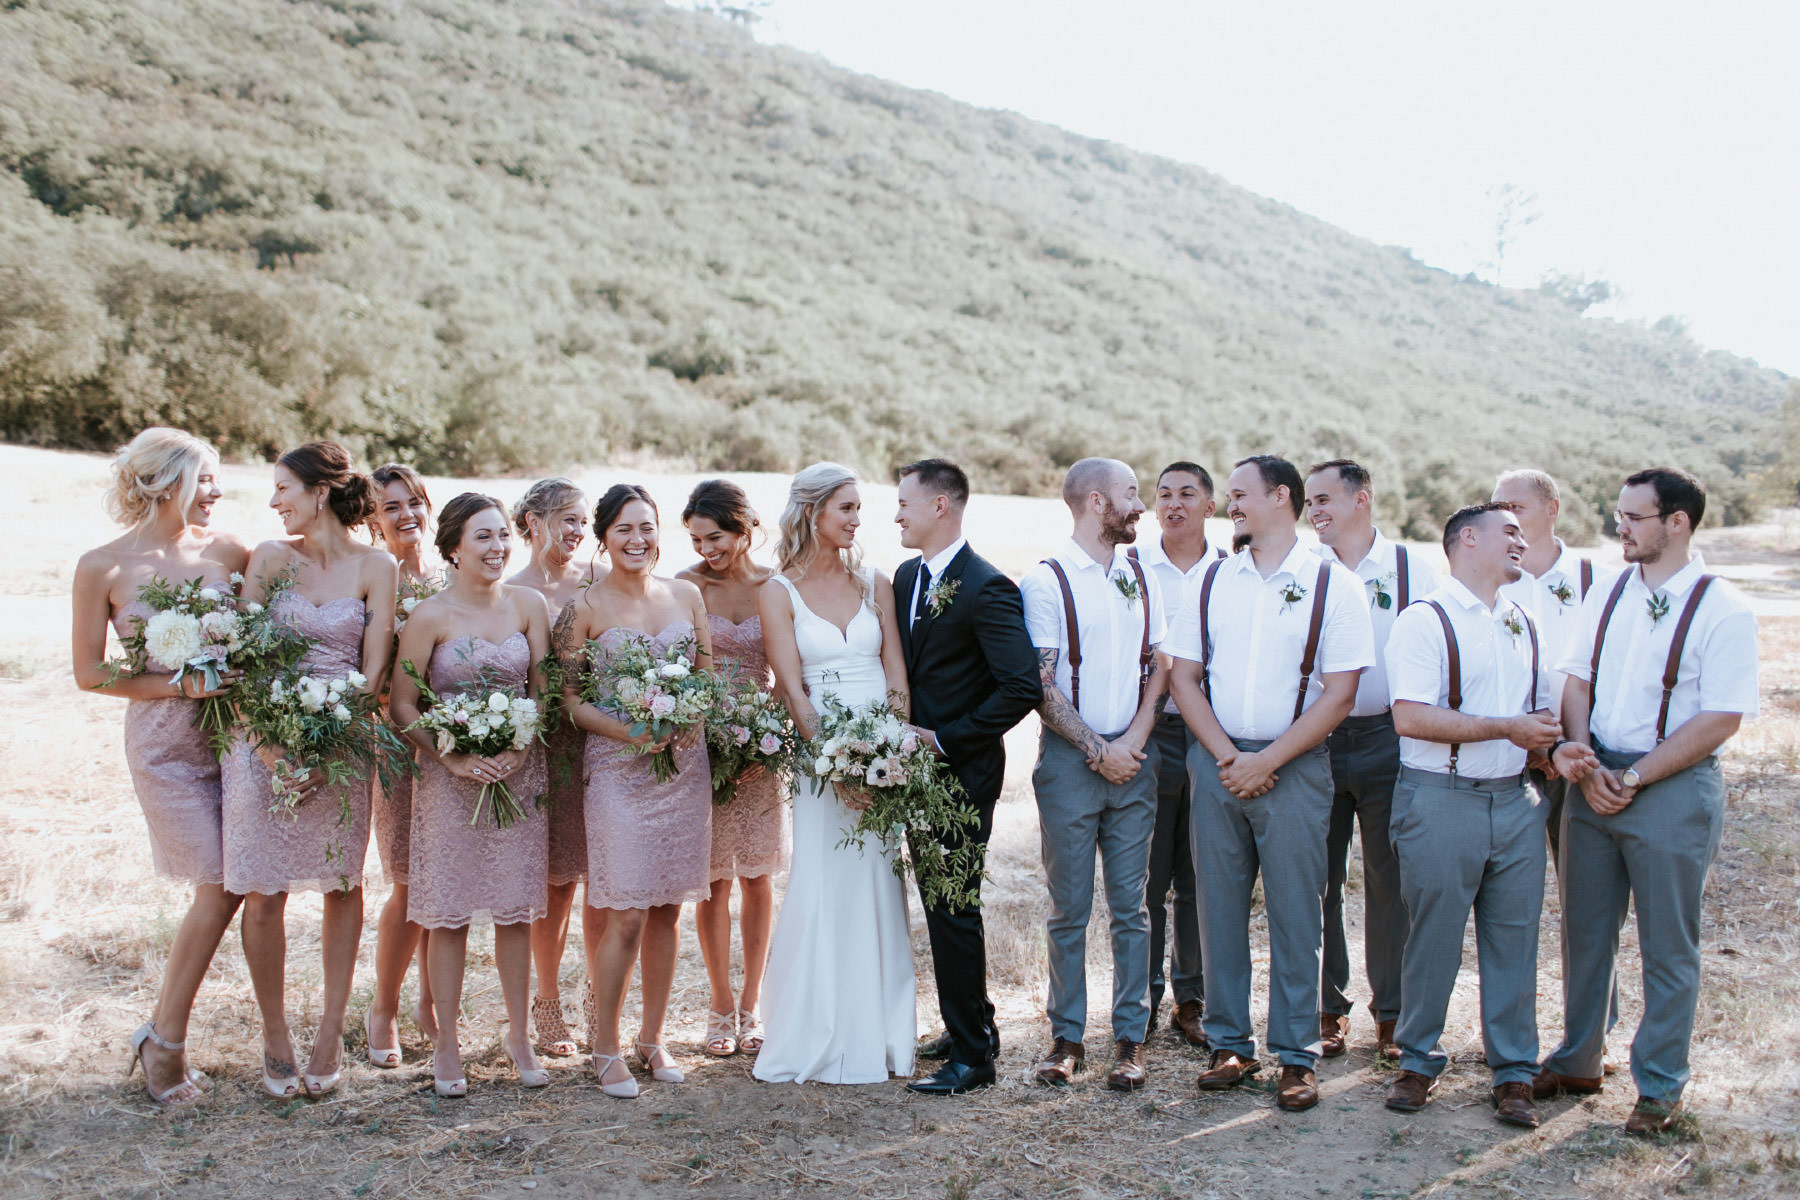 Bride and groom posed with entire bridal party